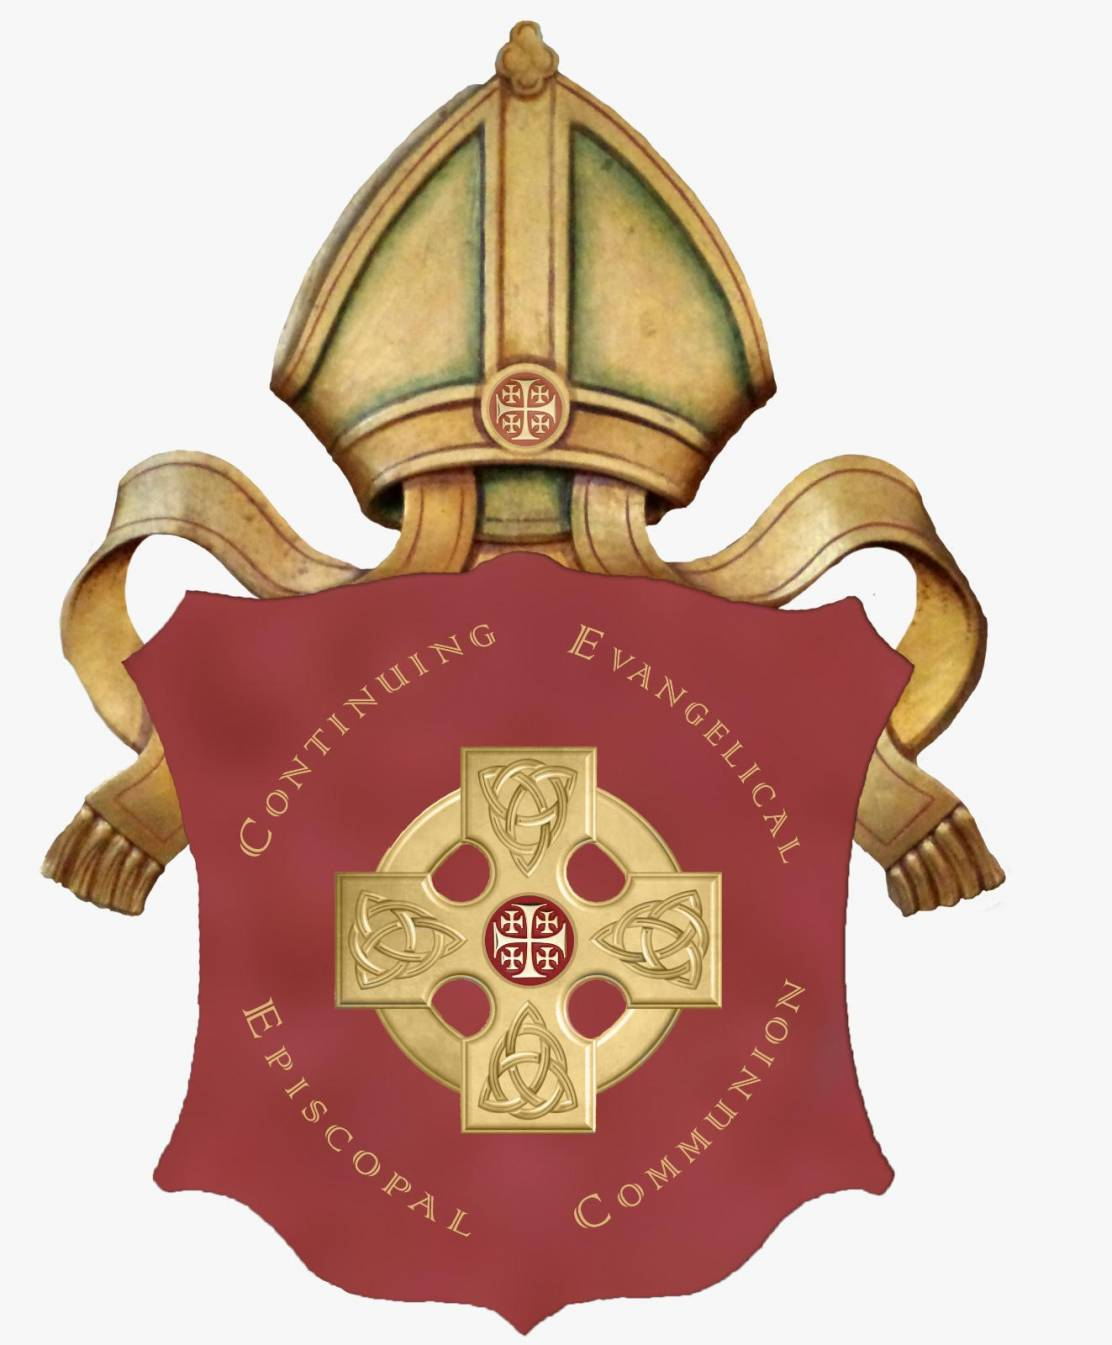 Continuing Evangelical Episcopal Communion Logo